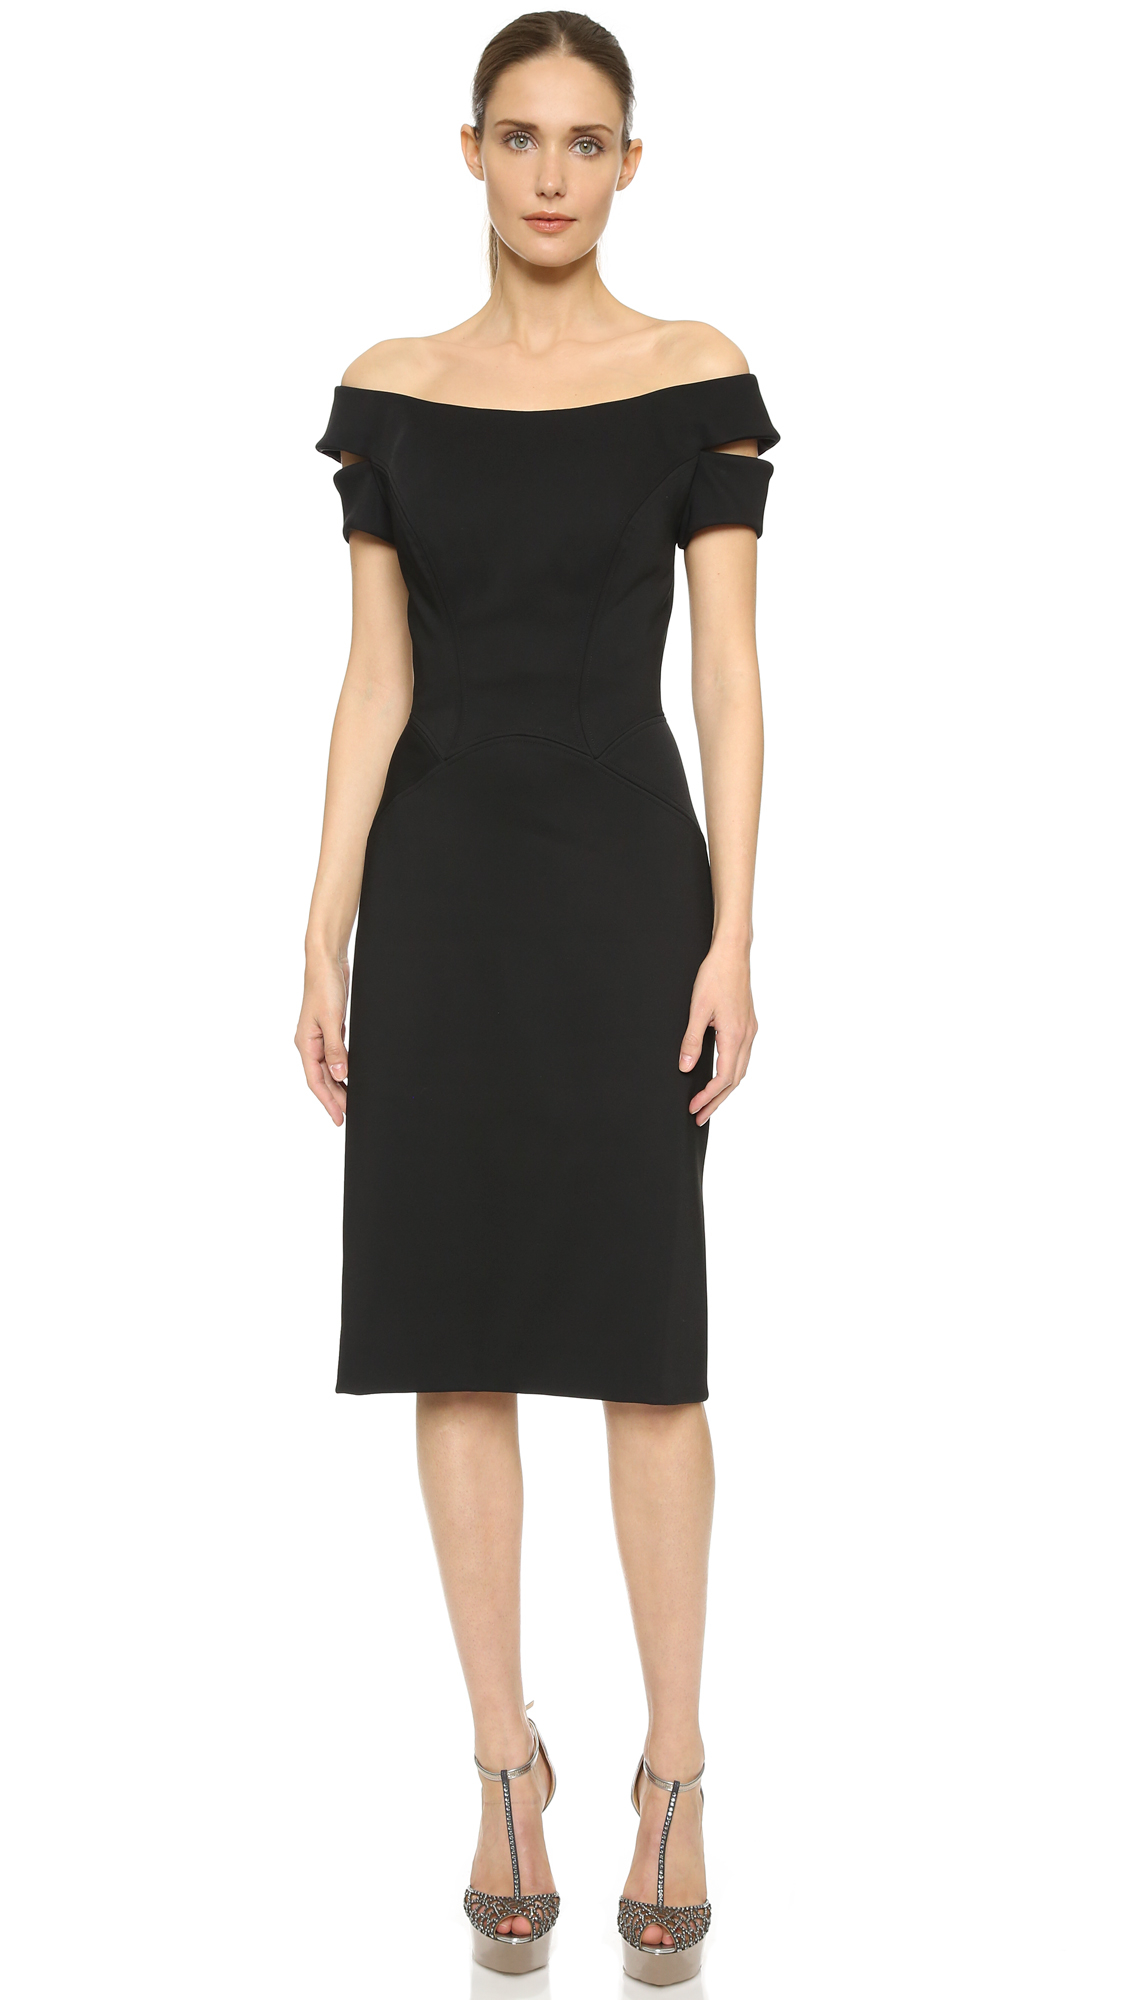 Zac posen Sleeveless Dress - Black in Black  Lyst